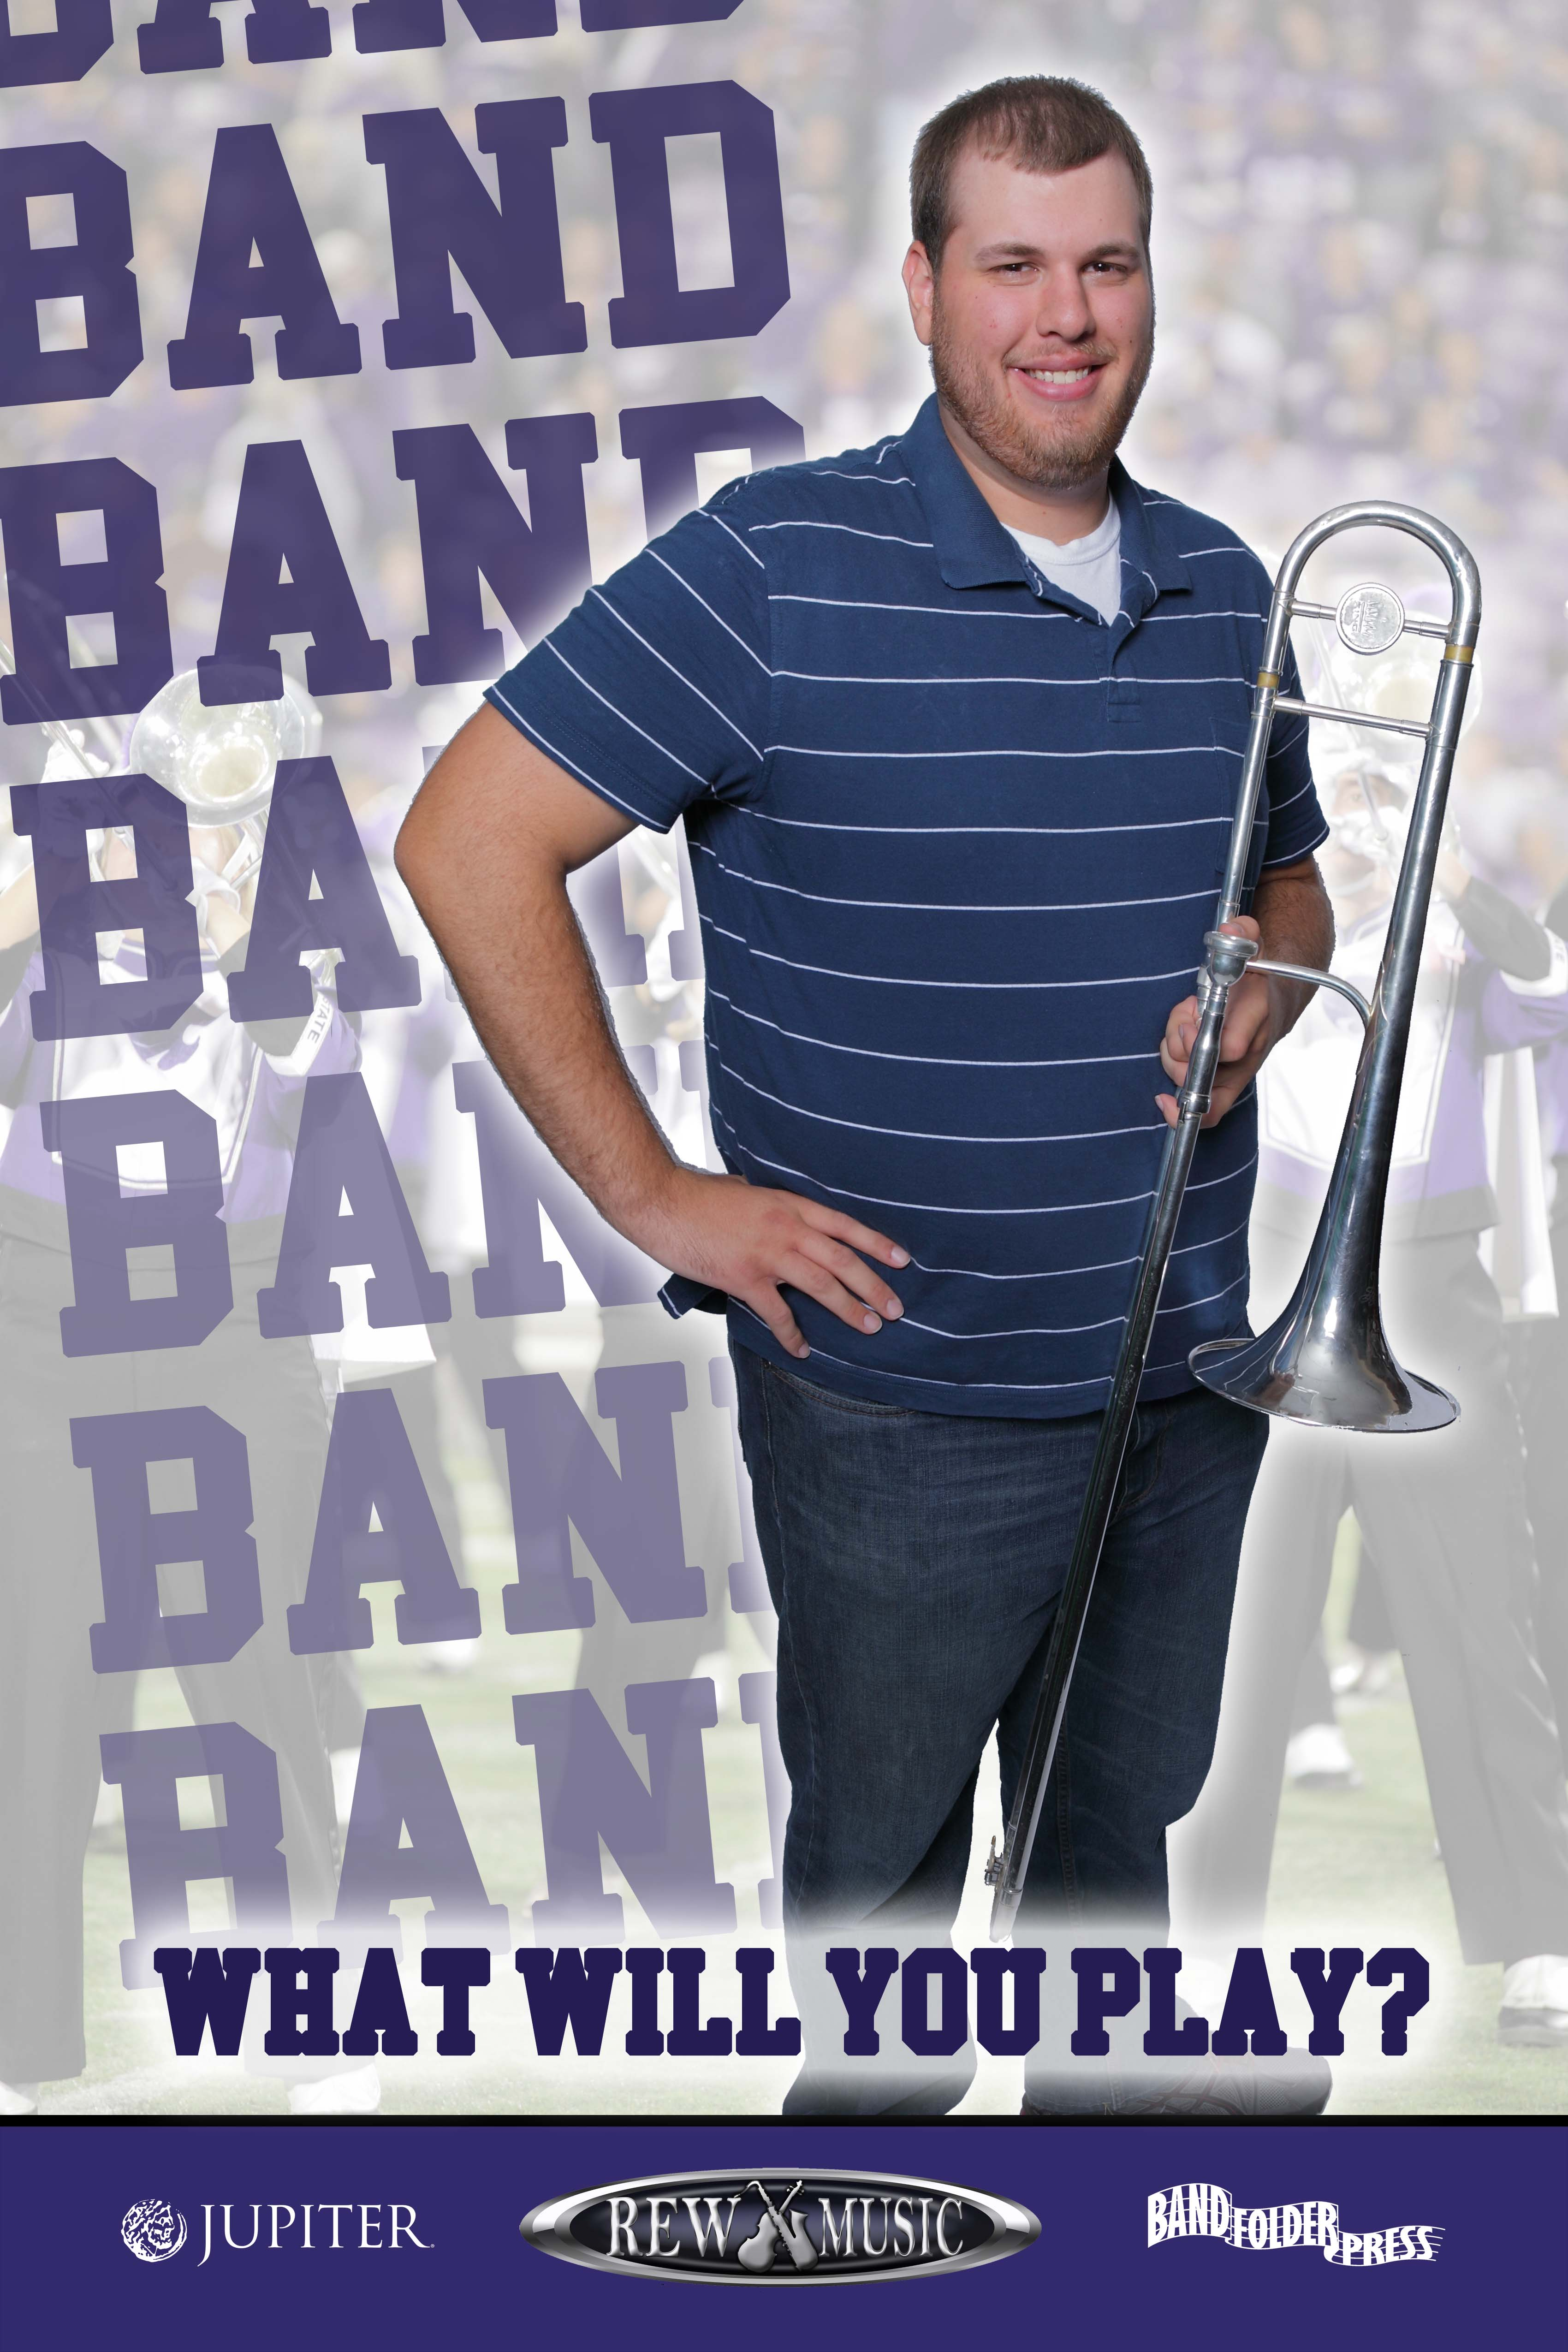 Join the School Band Trombone player